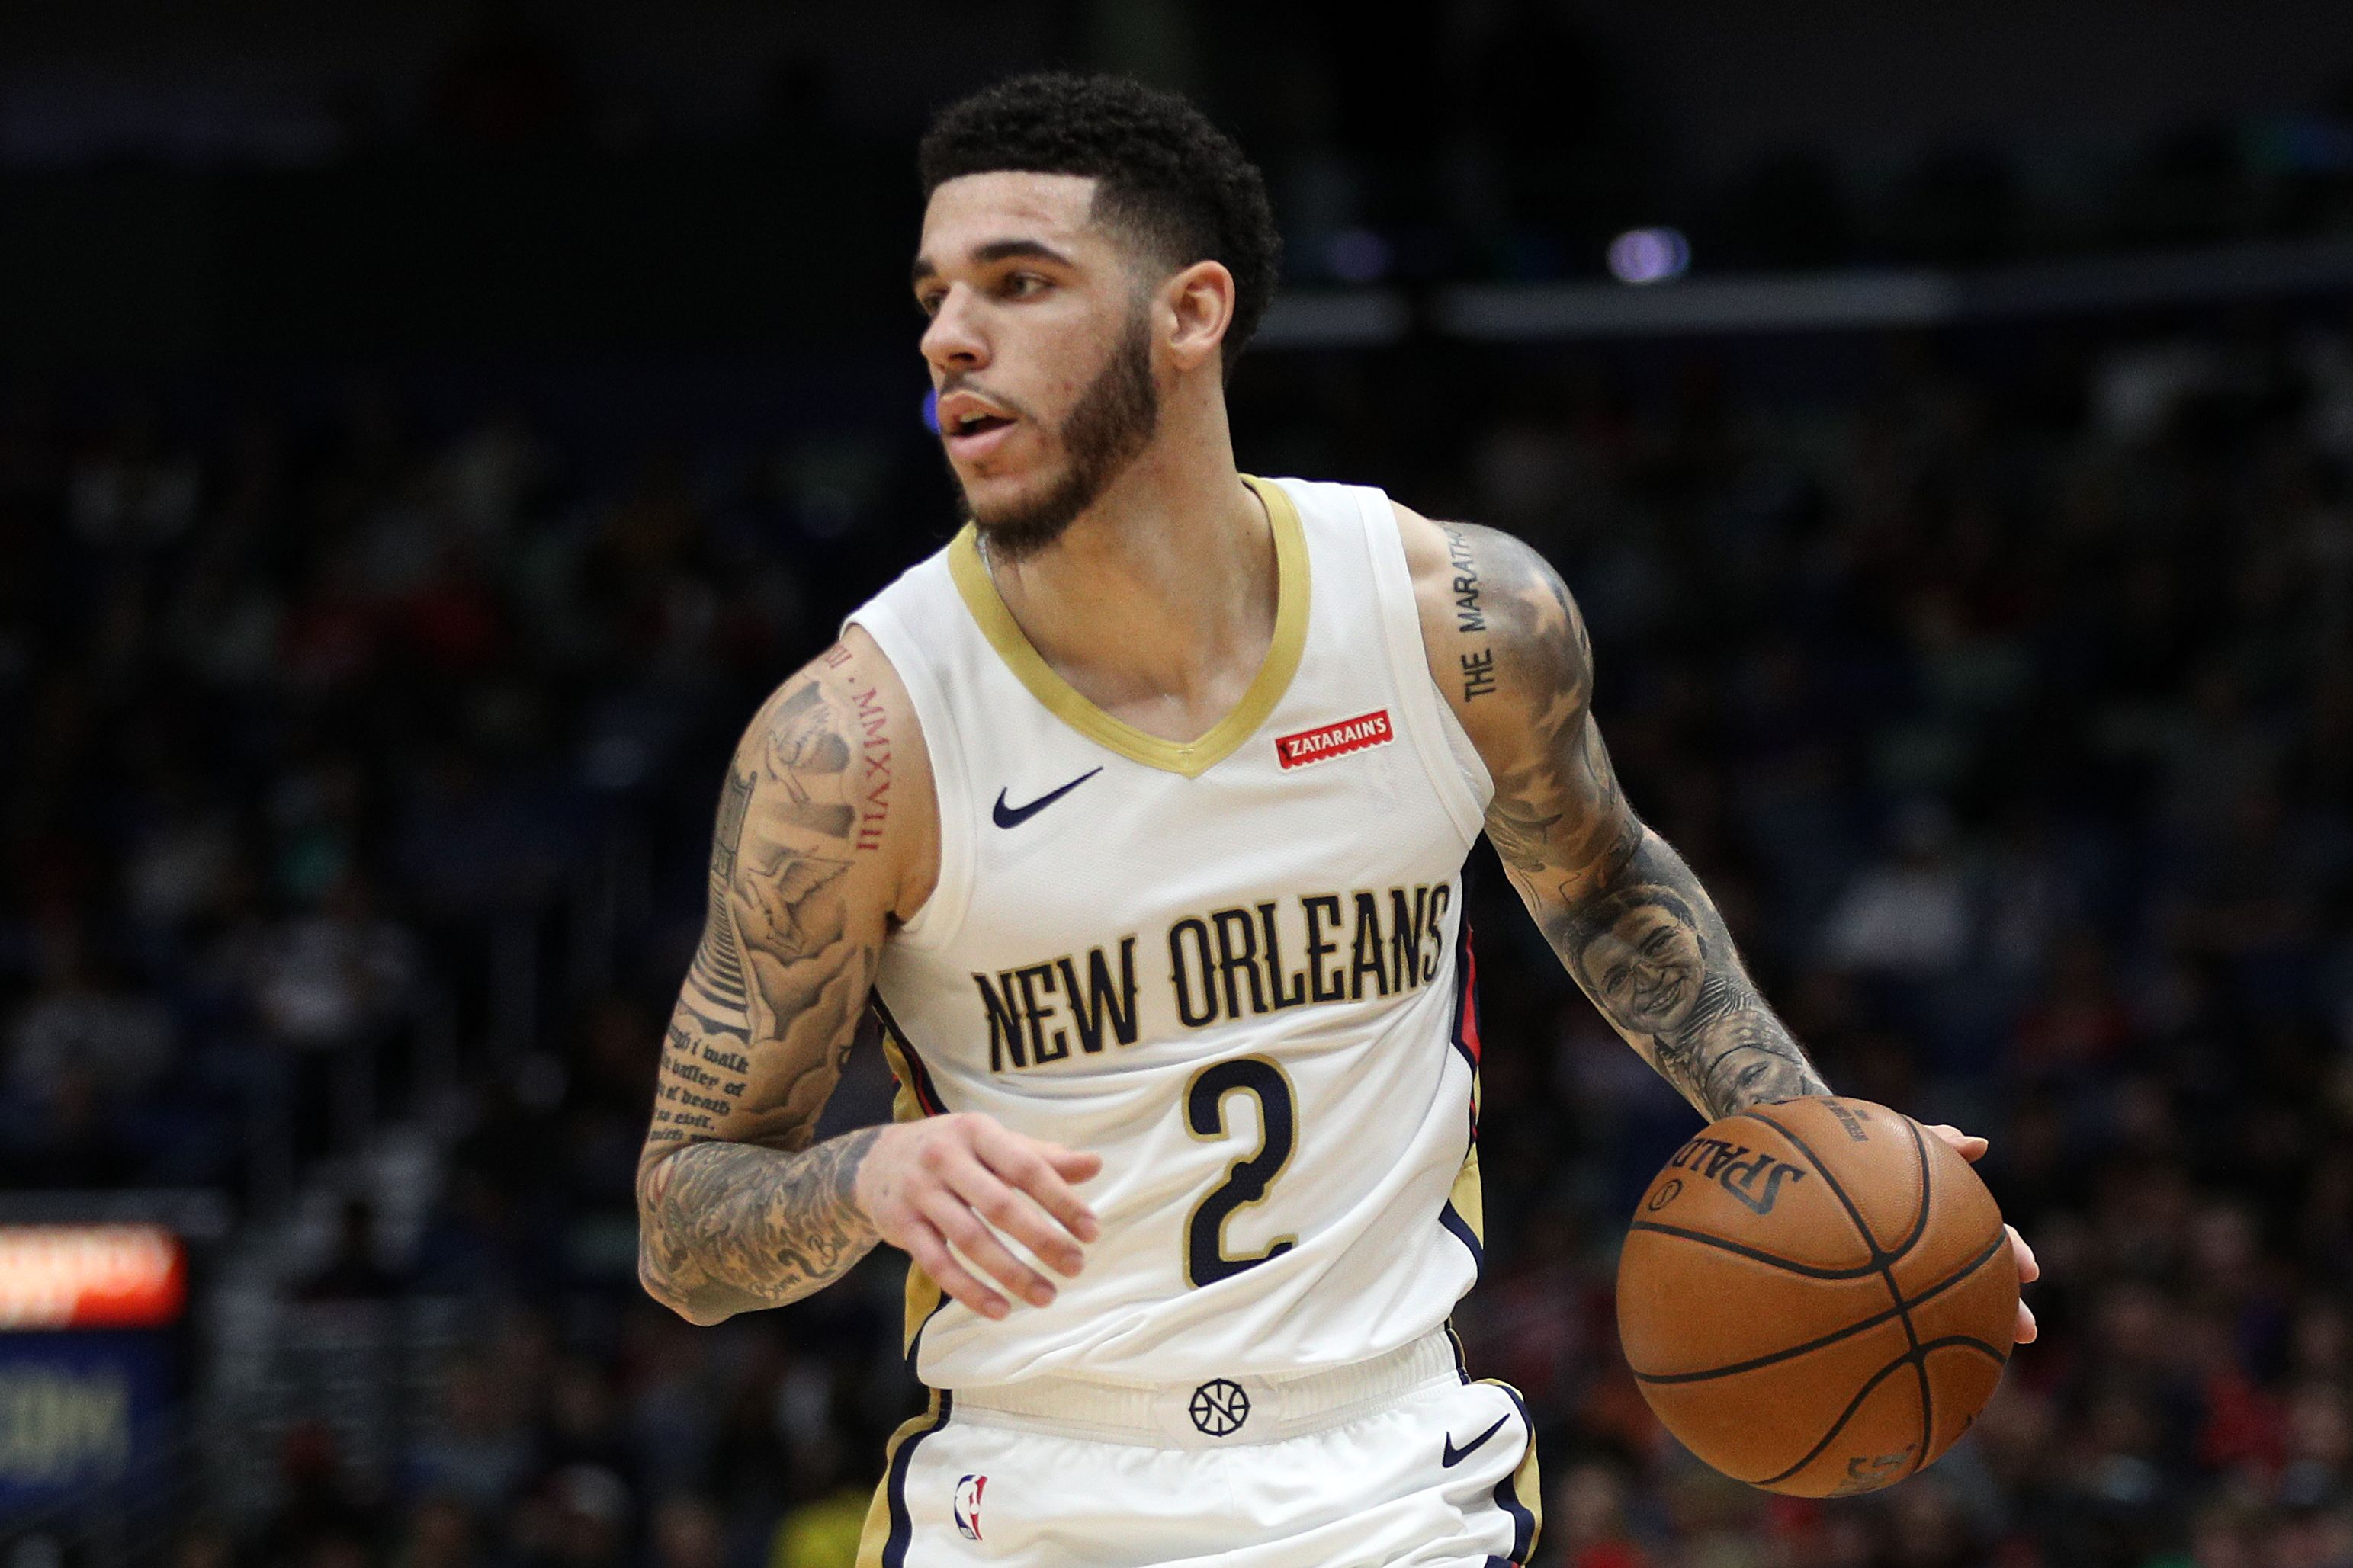 Lonzo Ball making plays for the Pelicans